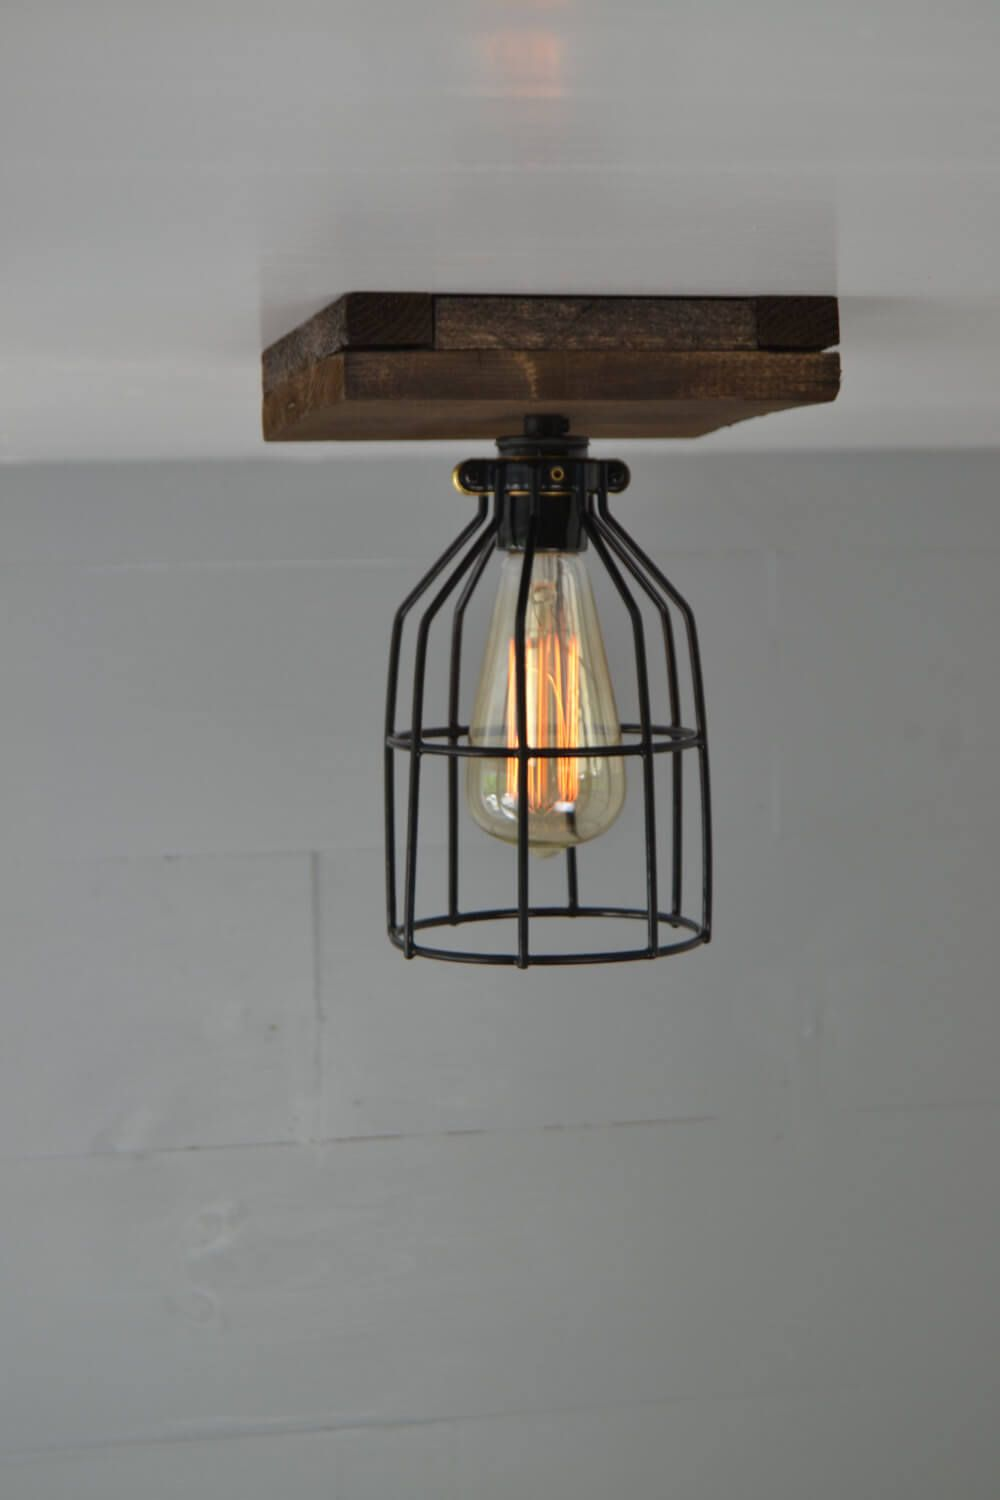 25 Fabulous Rustic Lighting Ideas To Give Your Home A Lovely